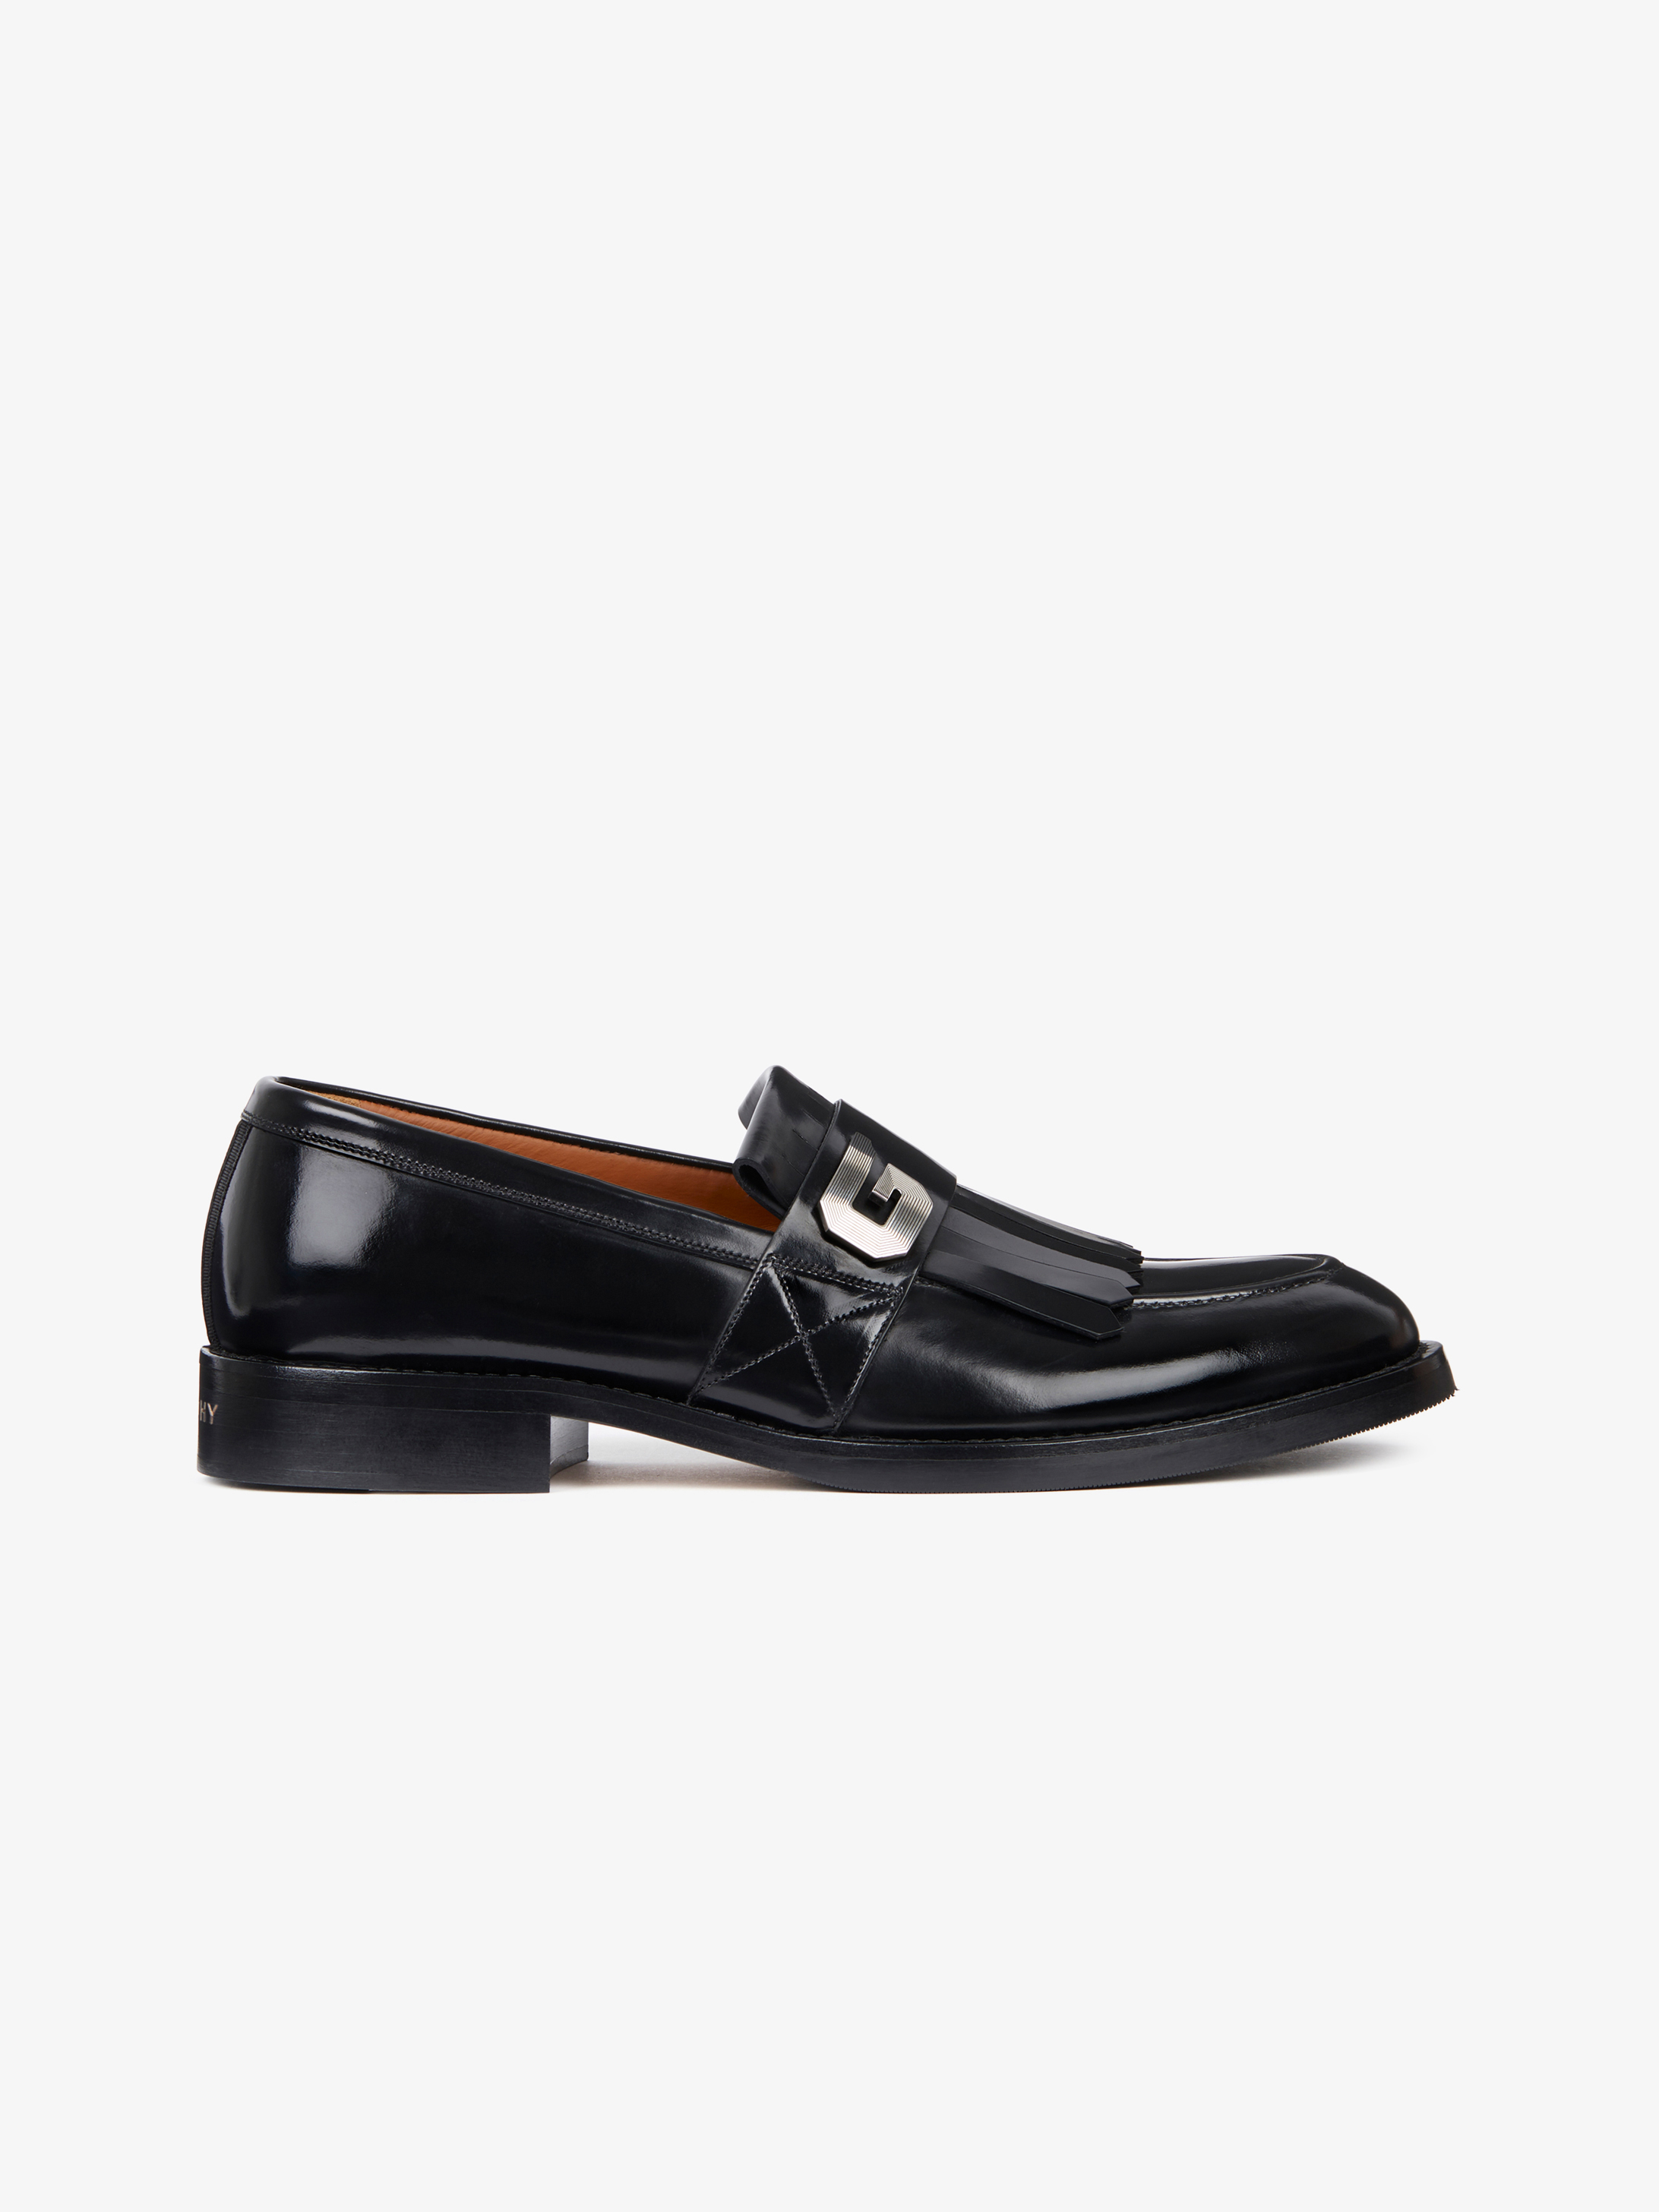 G buckle penny loafer